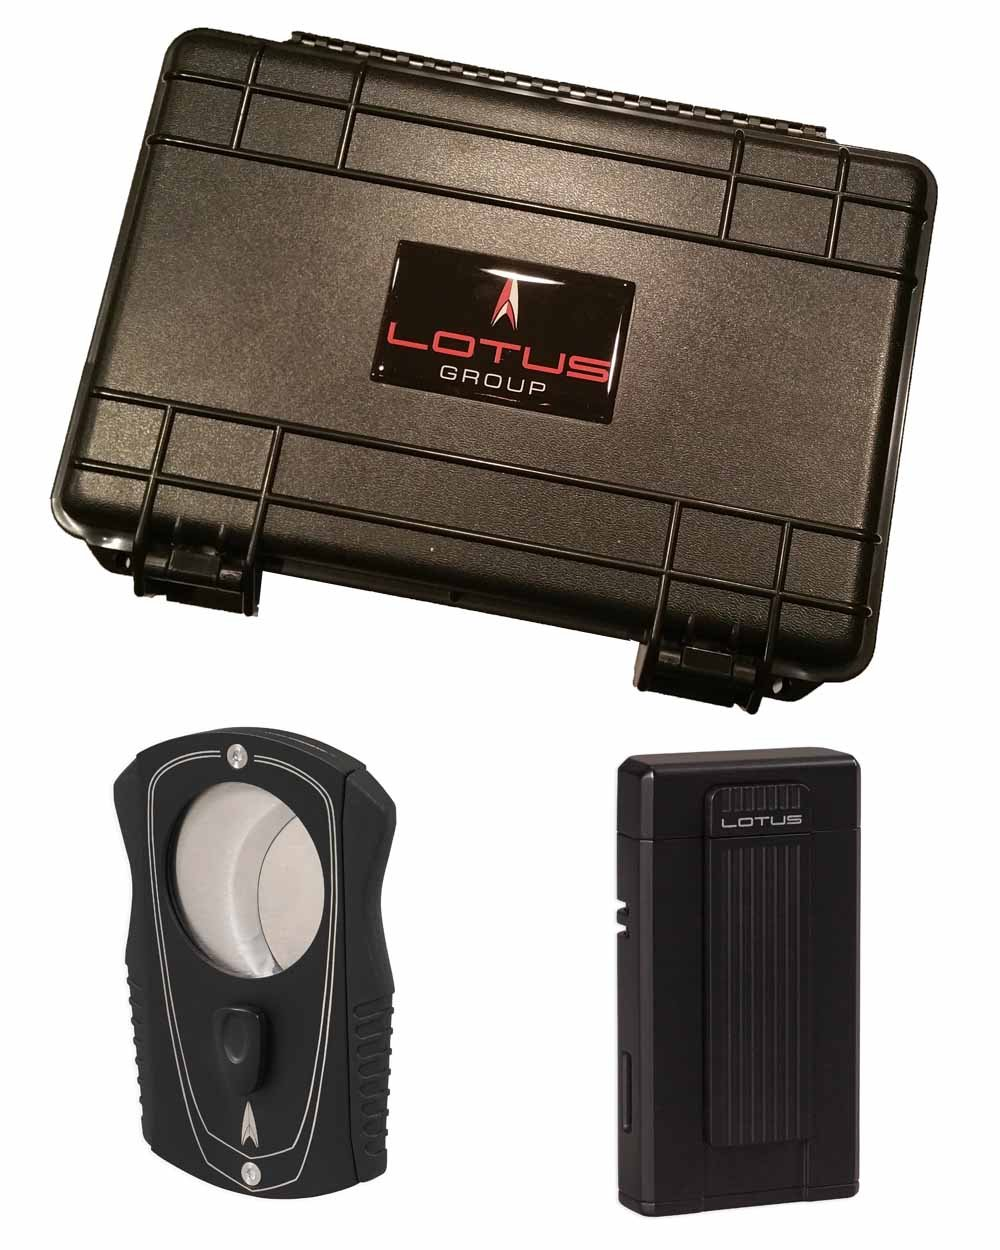 Ambassador Colussus 80 Ring Gauge Cutter Gift Set Black Lighter 5 Count Travel Humidor in an Attractive Gift Box Warranty